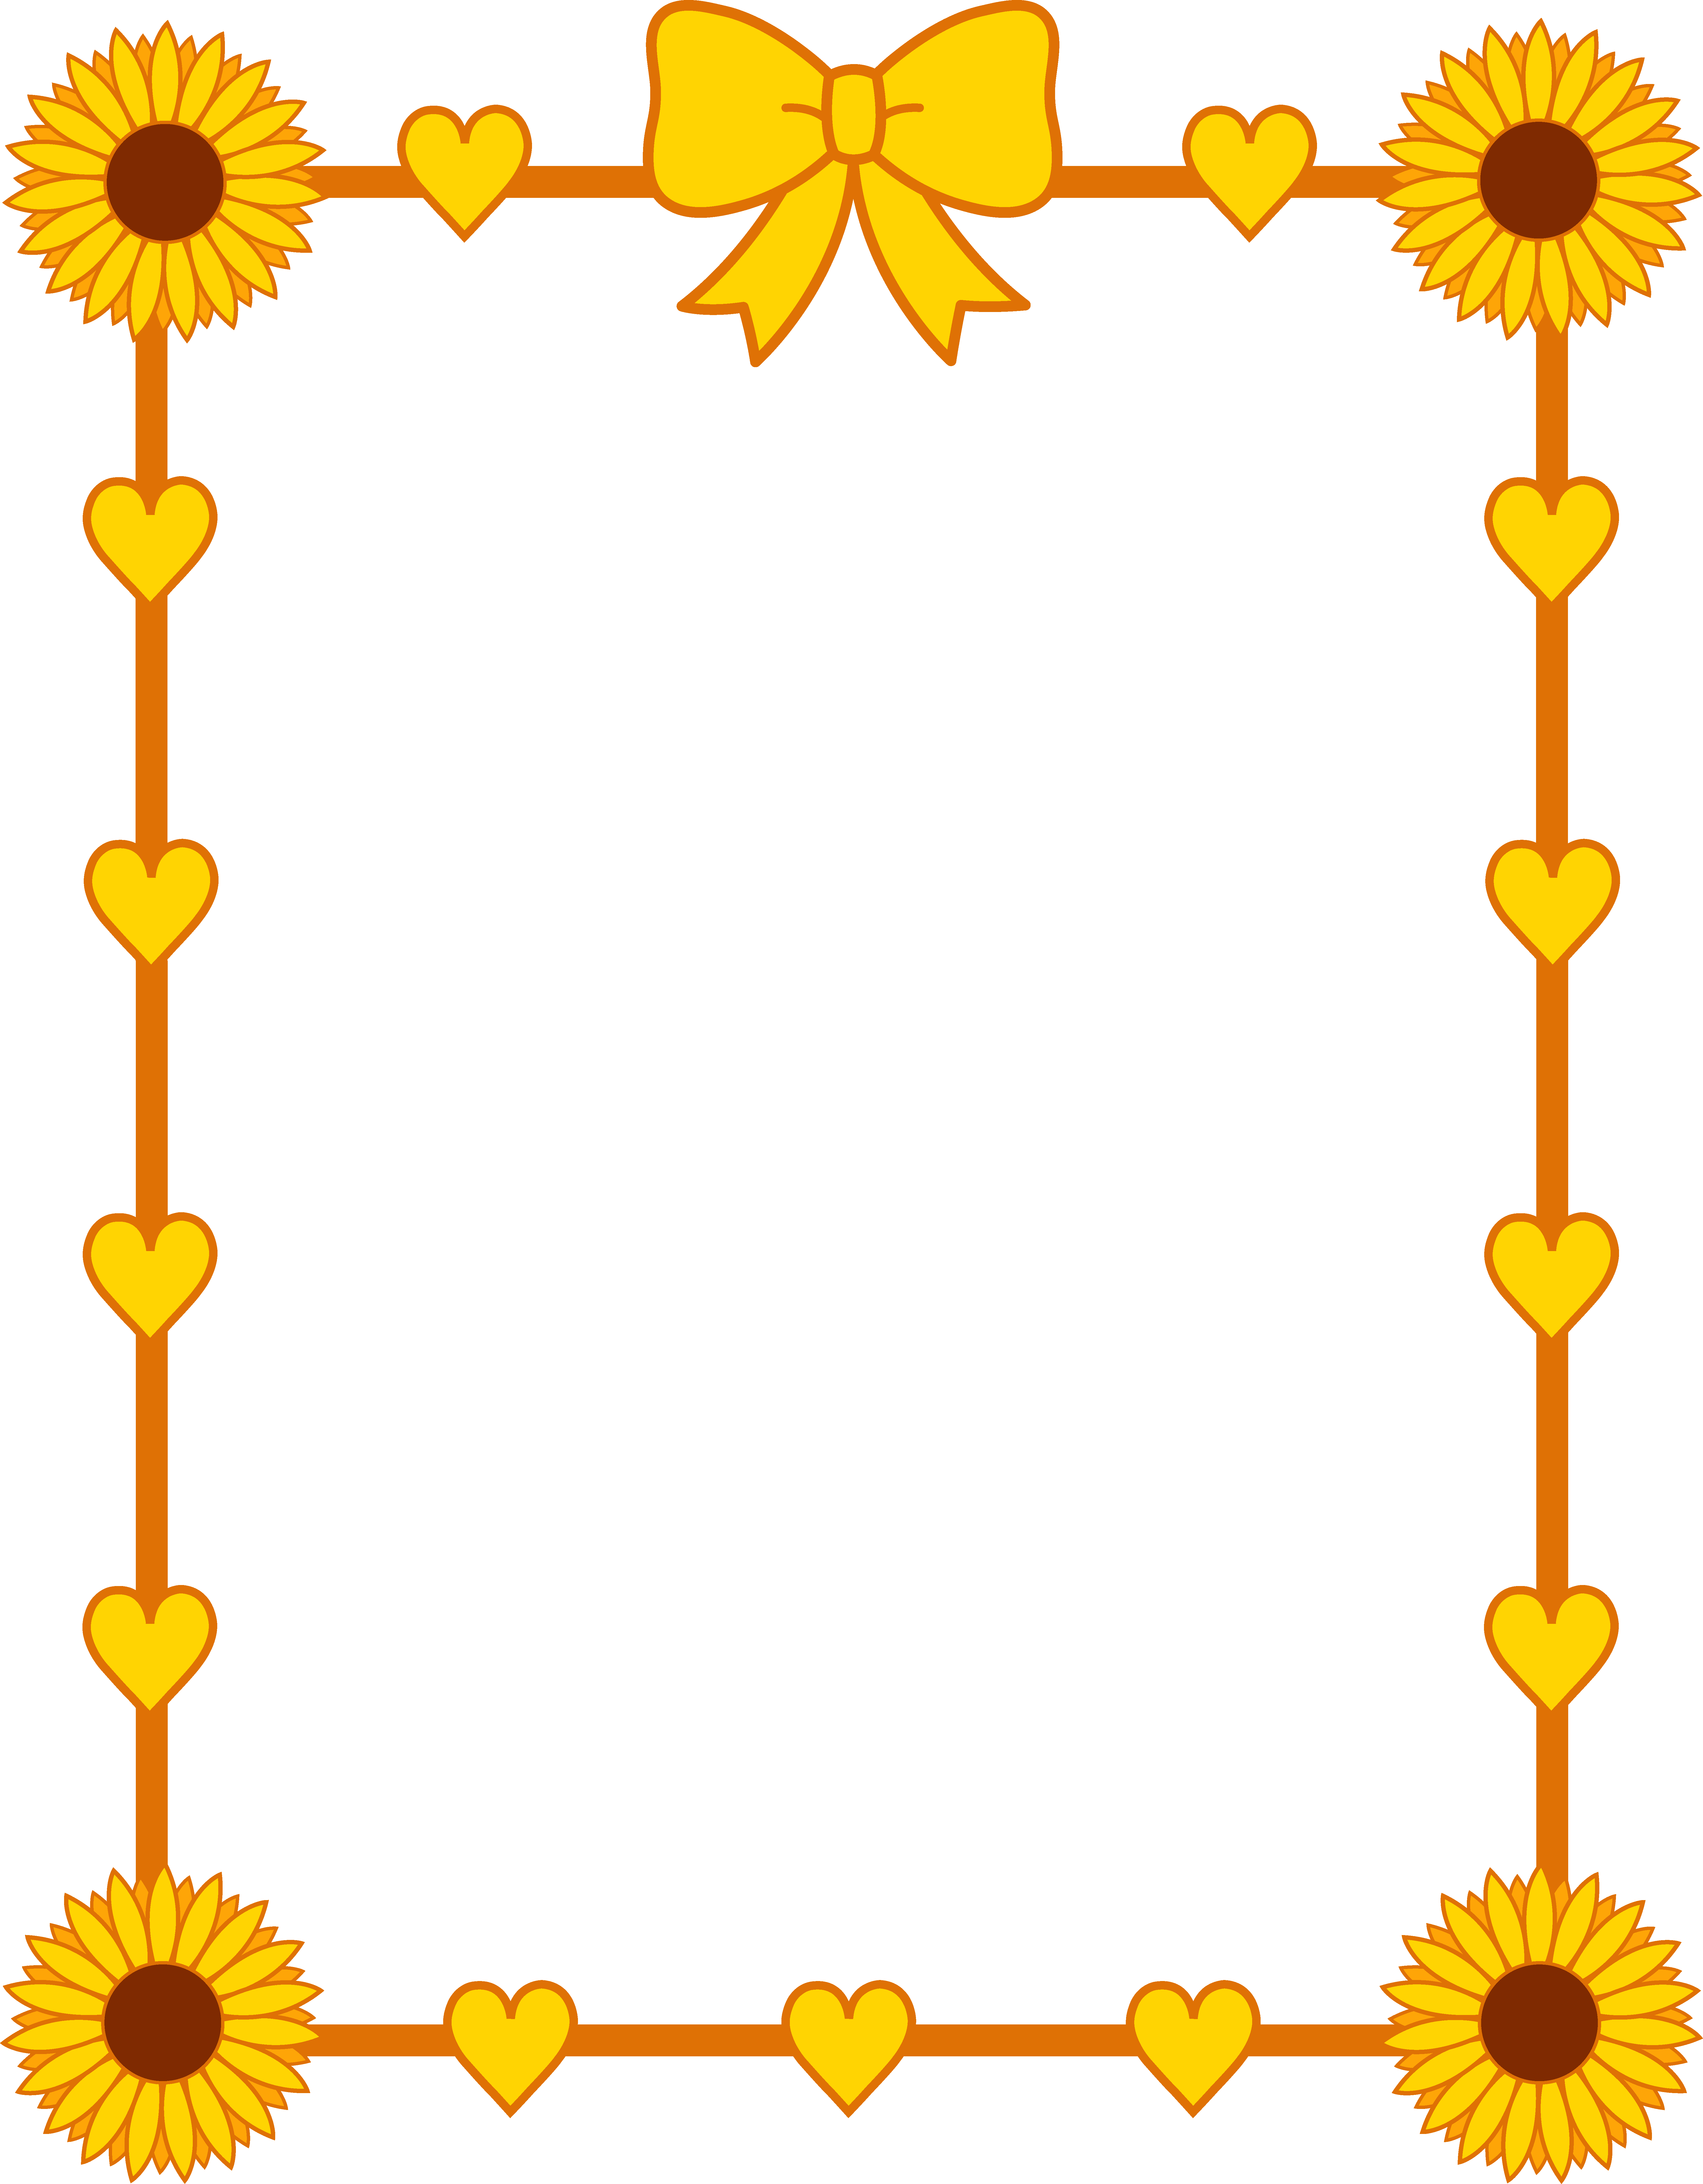 Yellow Sunflower Border Frame | Clipart Panda - Free Clipart Images